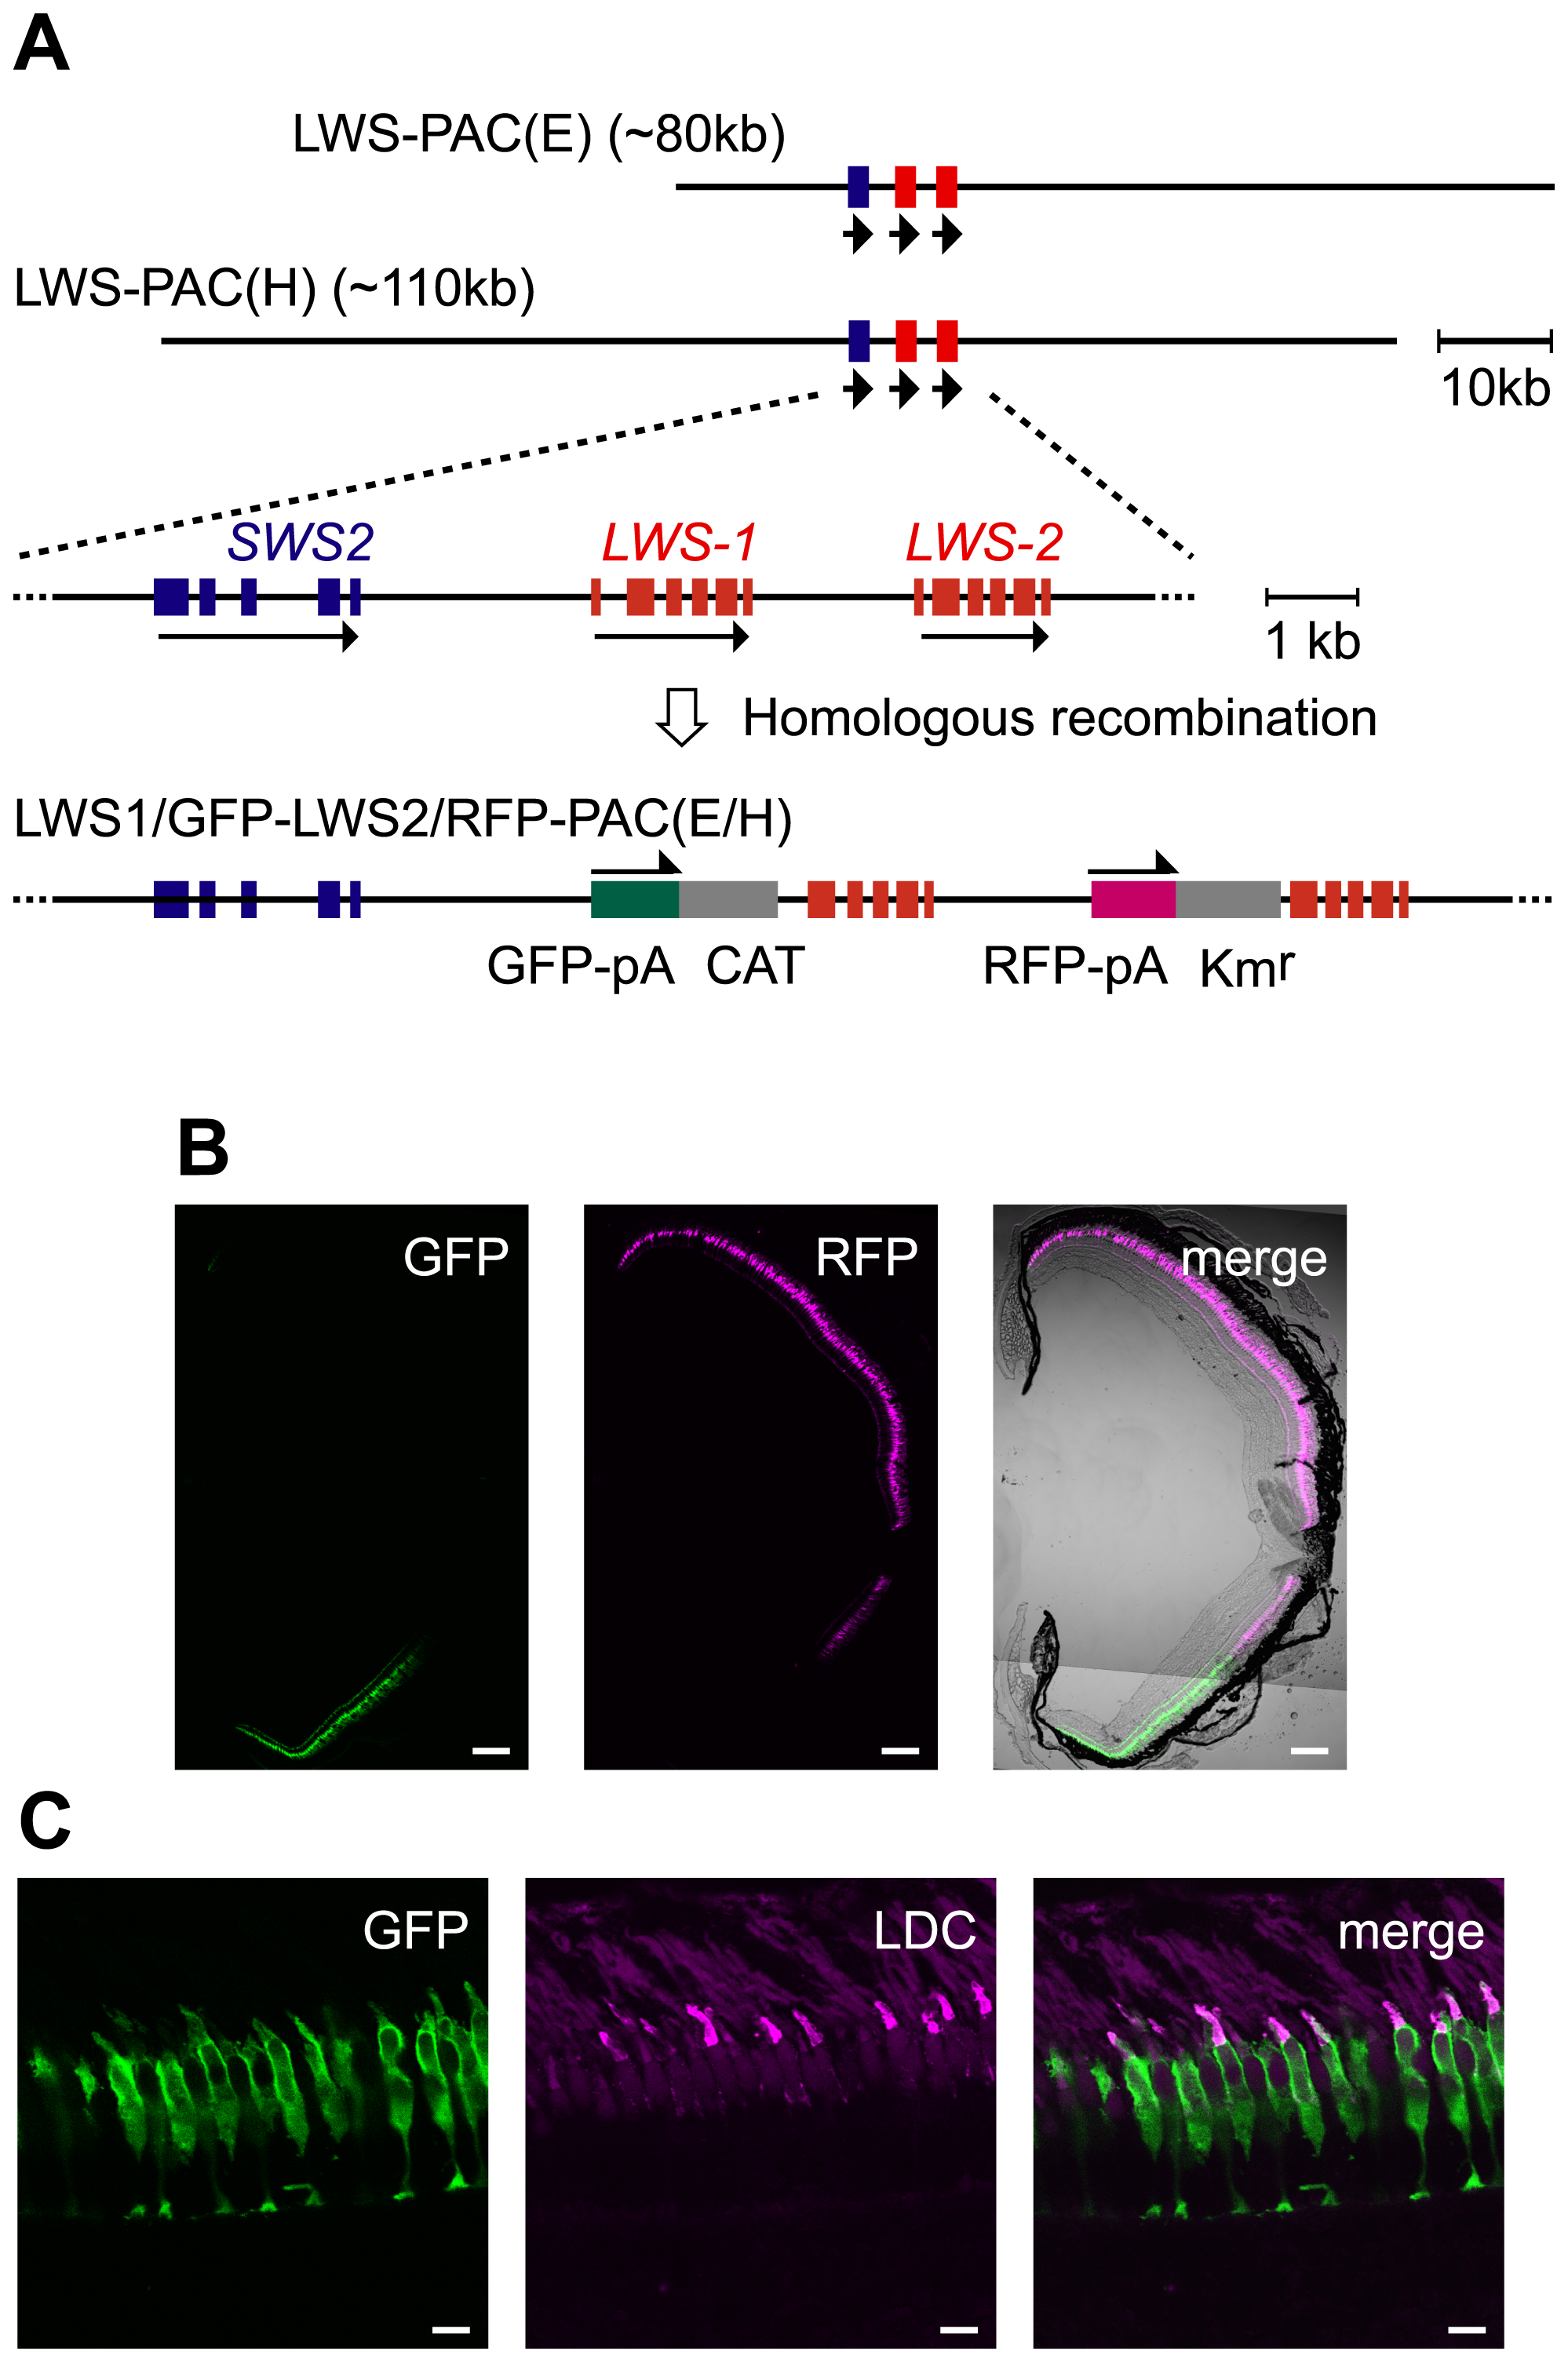 Recapitulation of the <i>LWS-1</i> and <i>LWS-2</i> expression in the zebrafish retina by the fluorescent markers in the PAC clones.